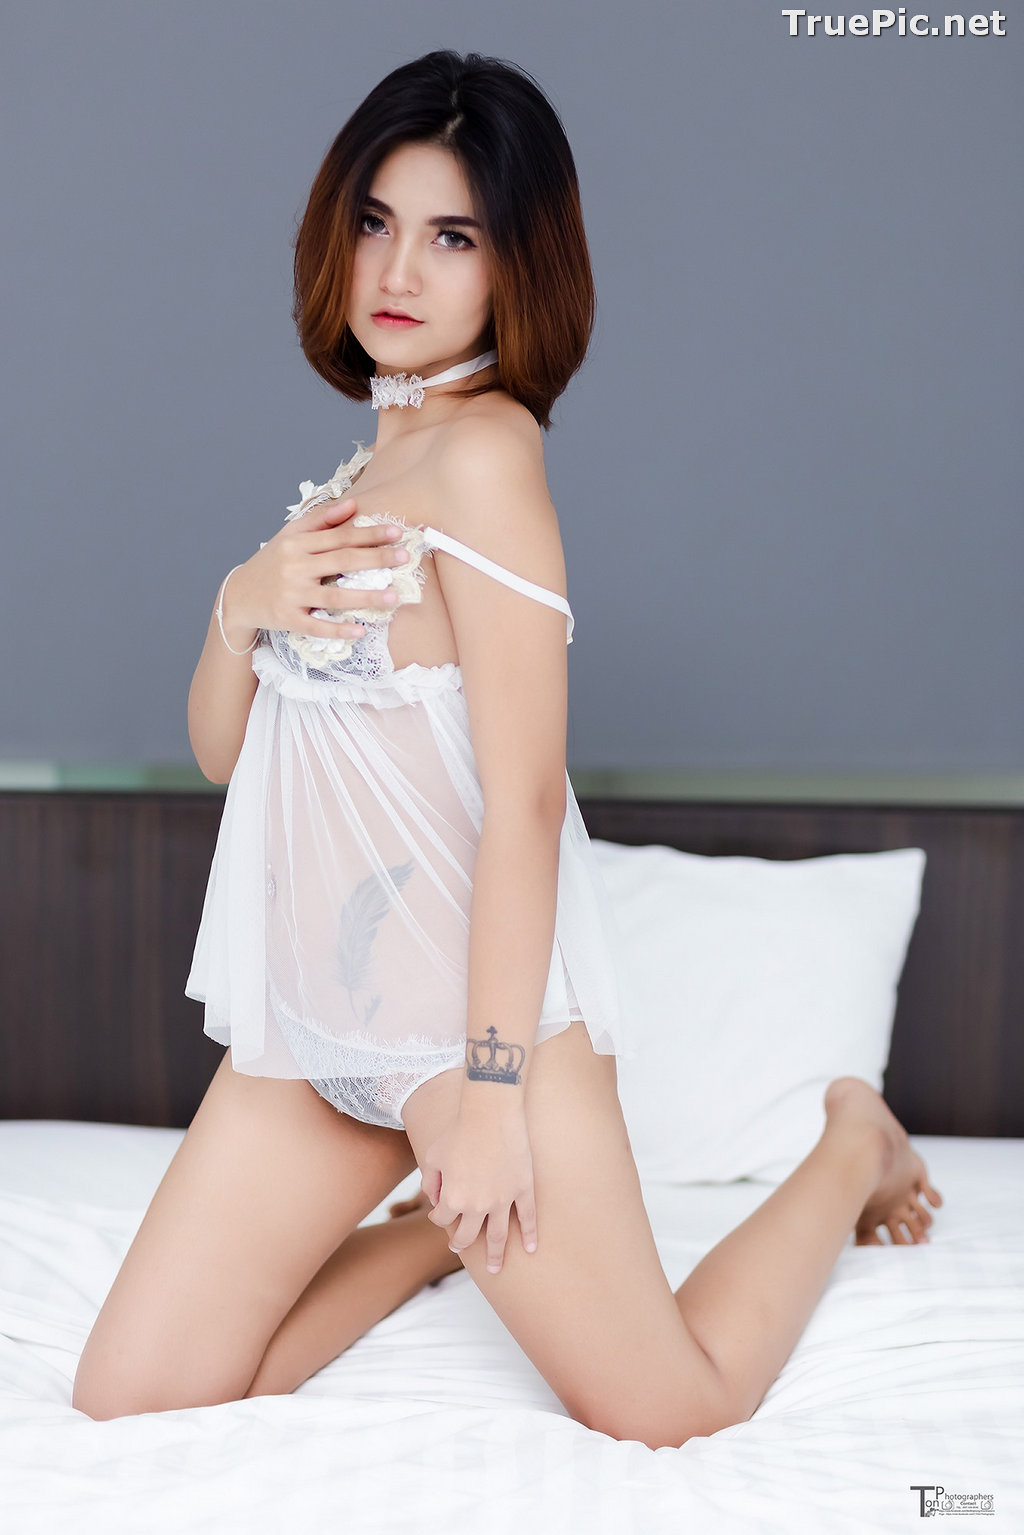 Image Thailand Sexy Model - Witsutar Ruechar - Beautiful Young Lady - TruePic.net - Picture-6